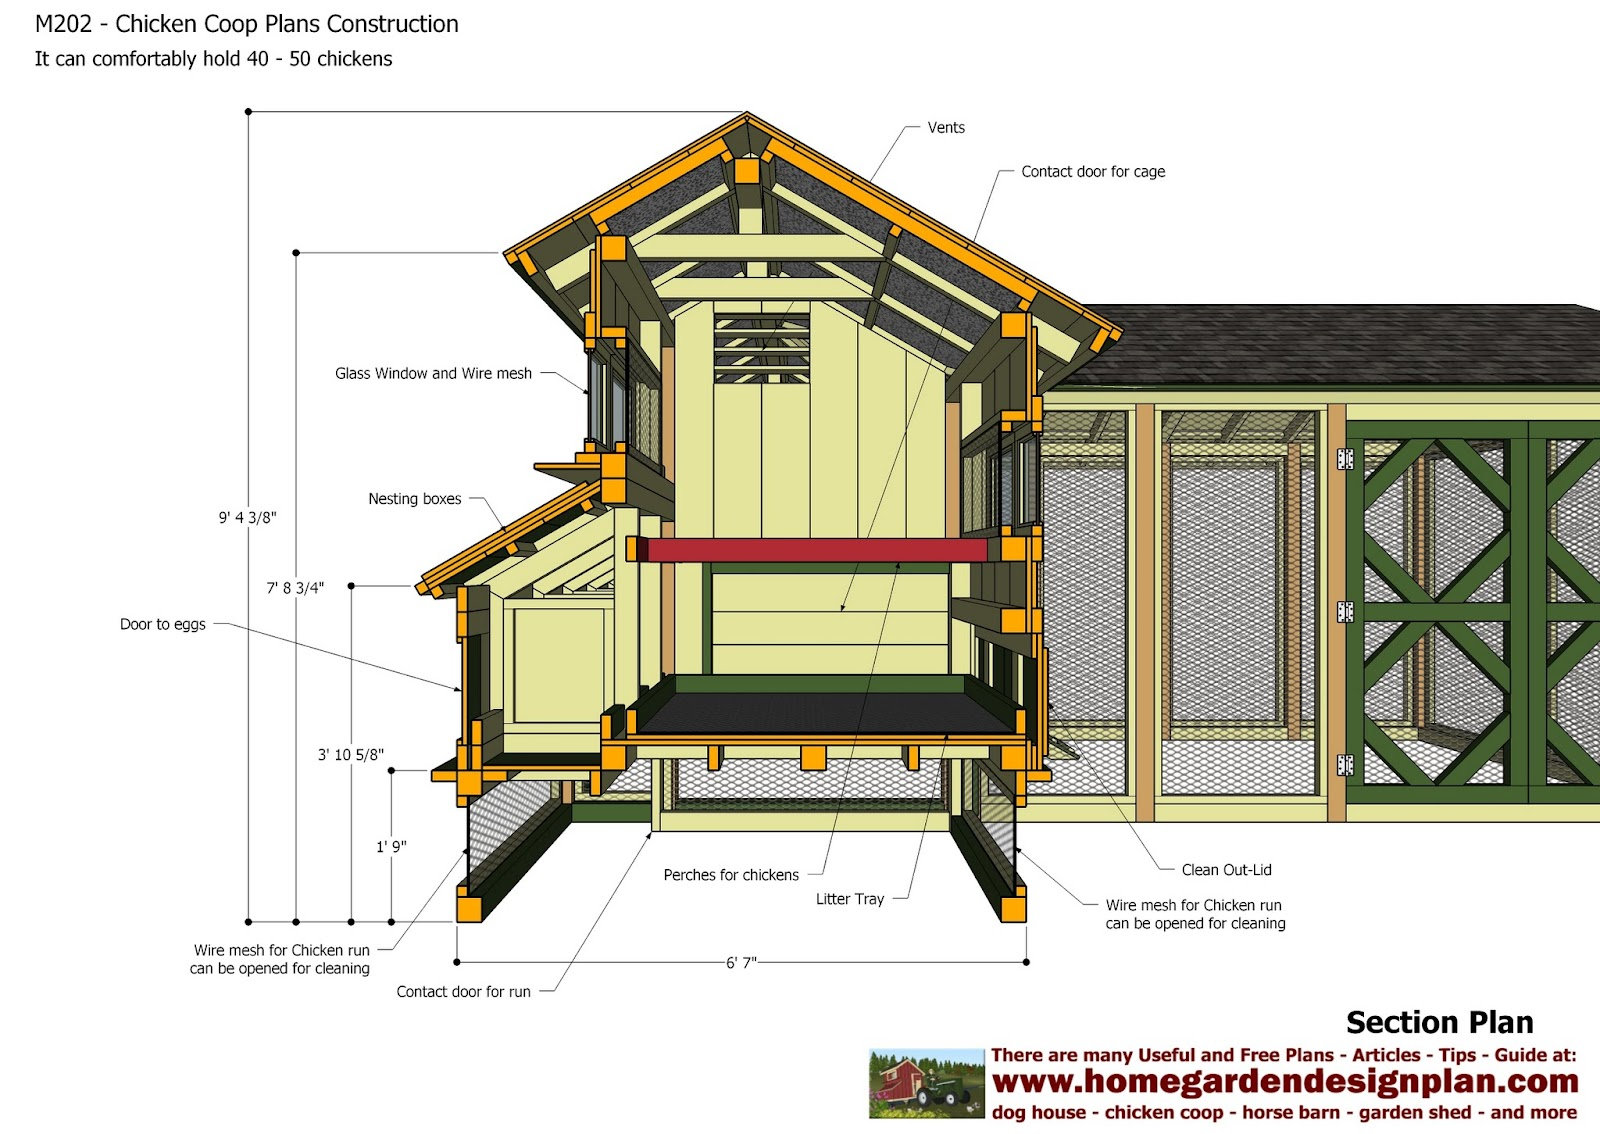 Home garden plans m202 chicken coop plans construction chicken coop design how to build a for Hen house design plans